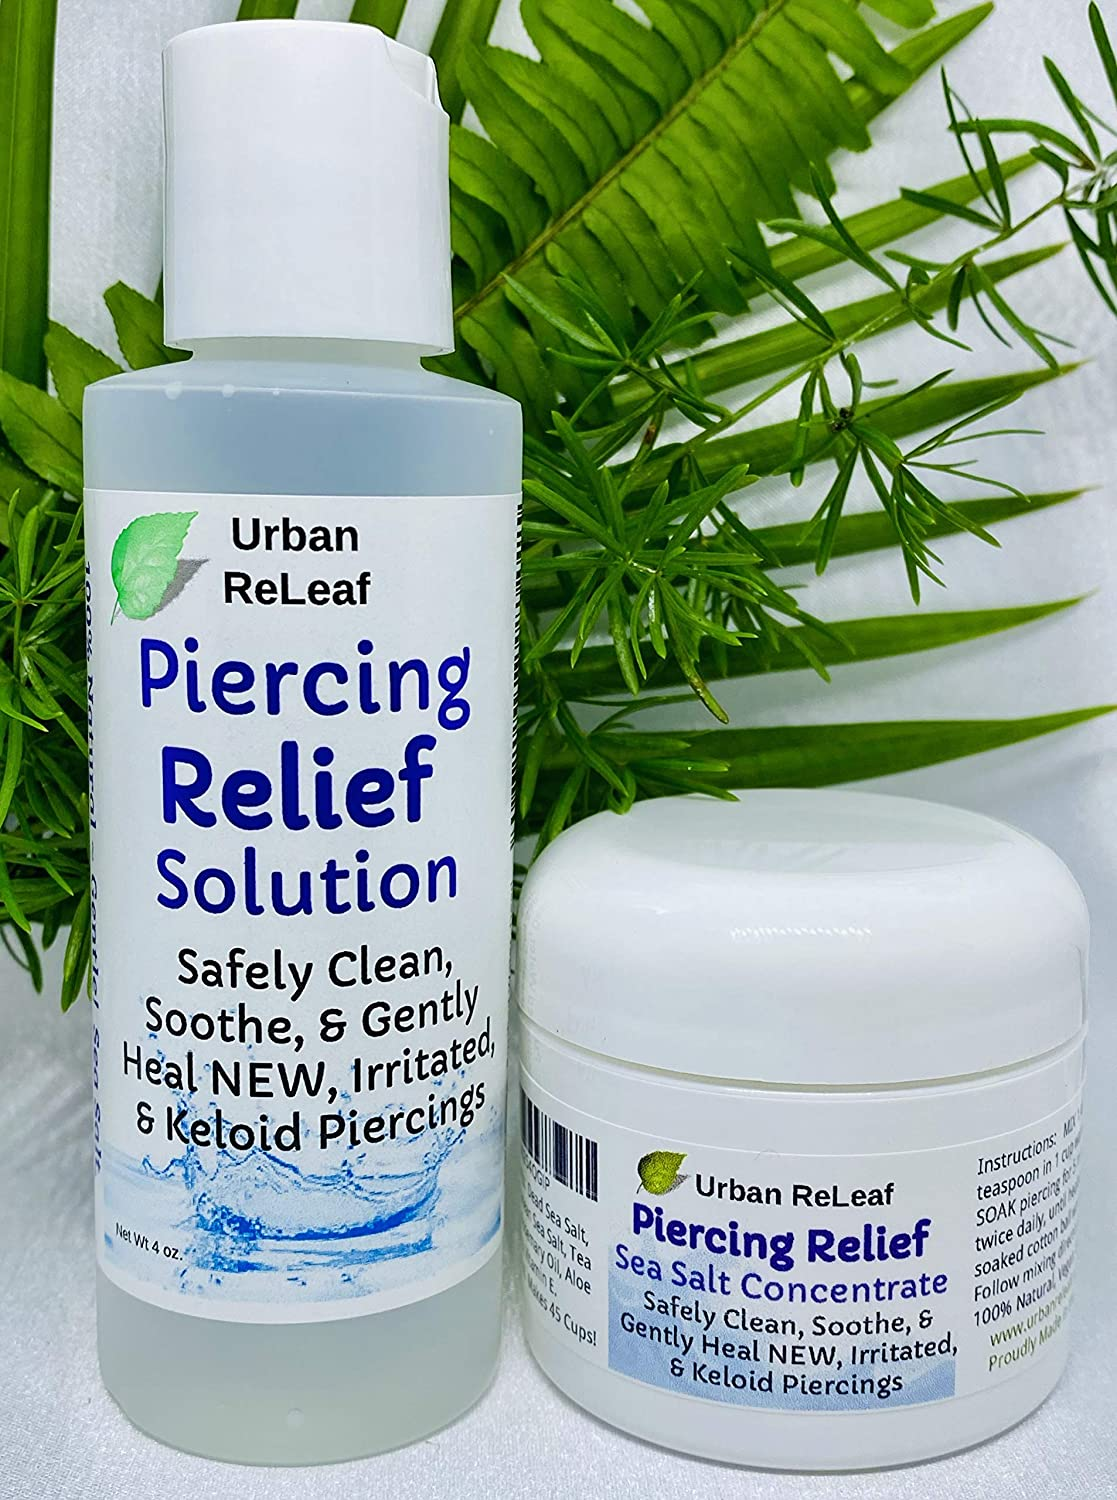 Set of Urban ReLeaf Piercing Relief Solution & Sea Salt Concentrate ! Gentle, Effective Aftercare and Refill Salts. Fast Help for Irritated, Keloid, Fussy & Problem Piercings, 100% Natural Soothing